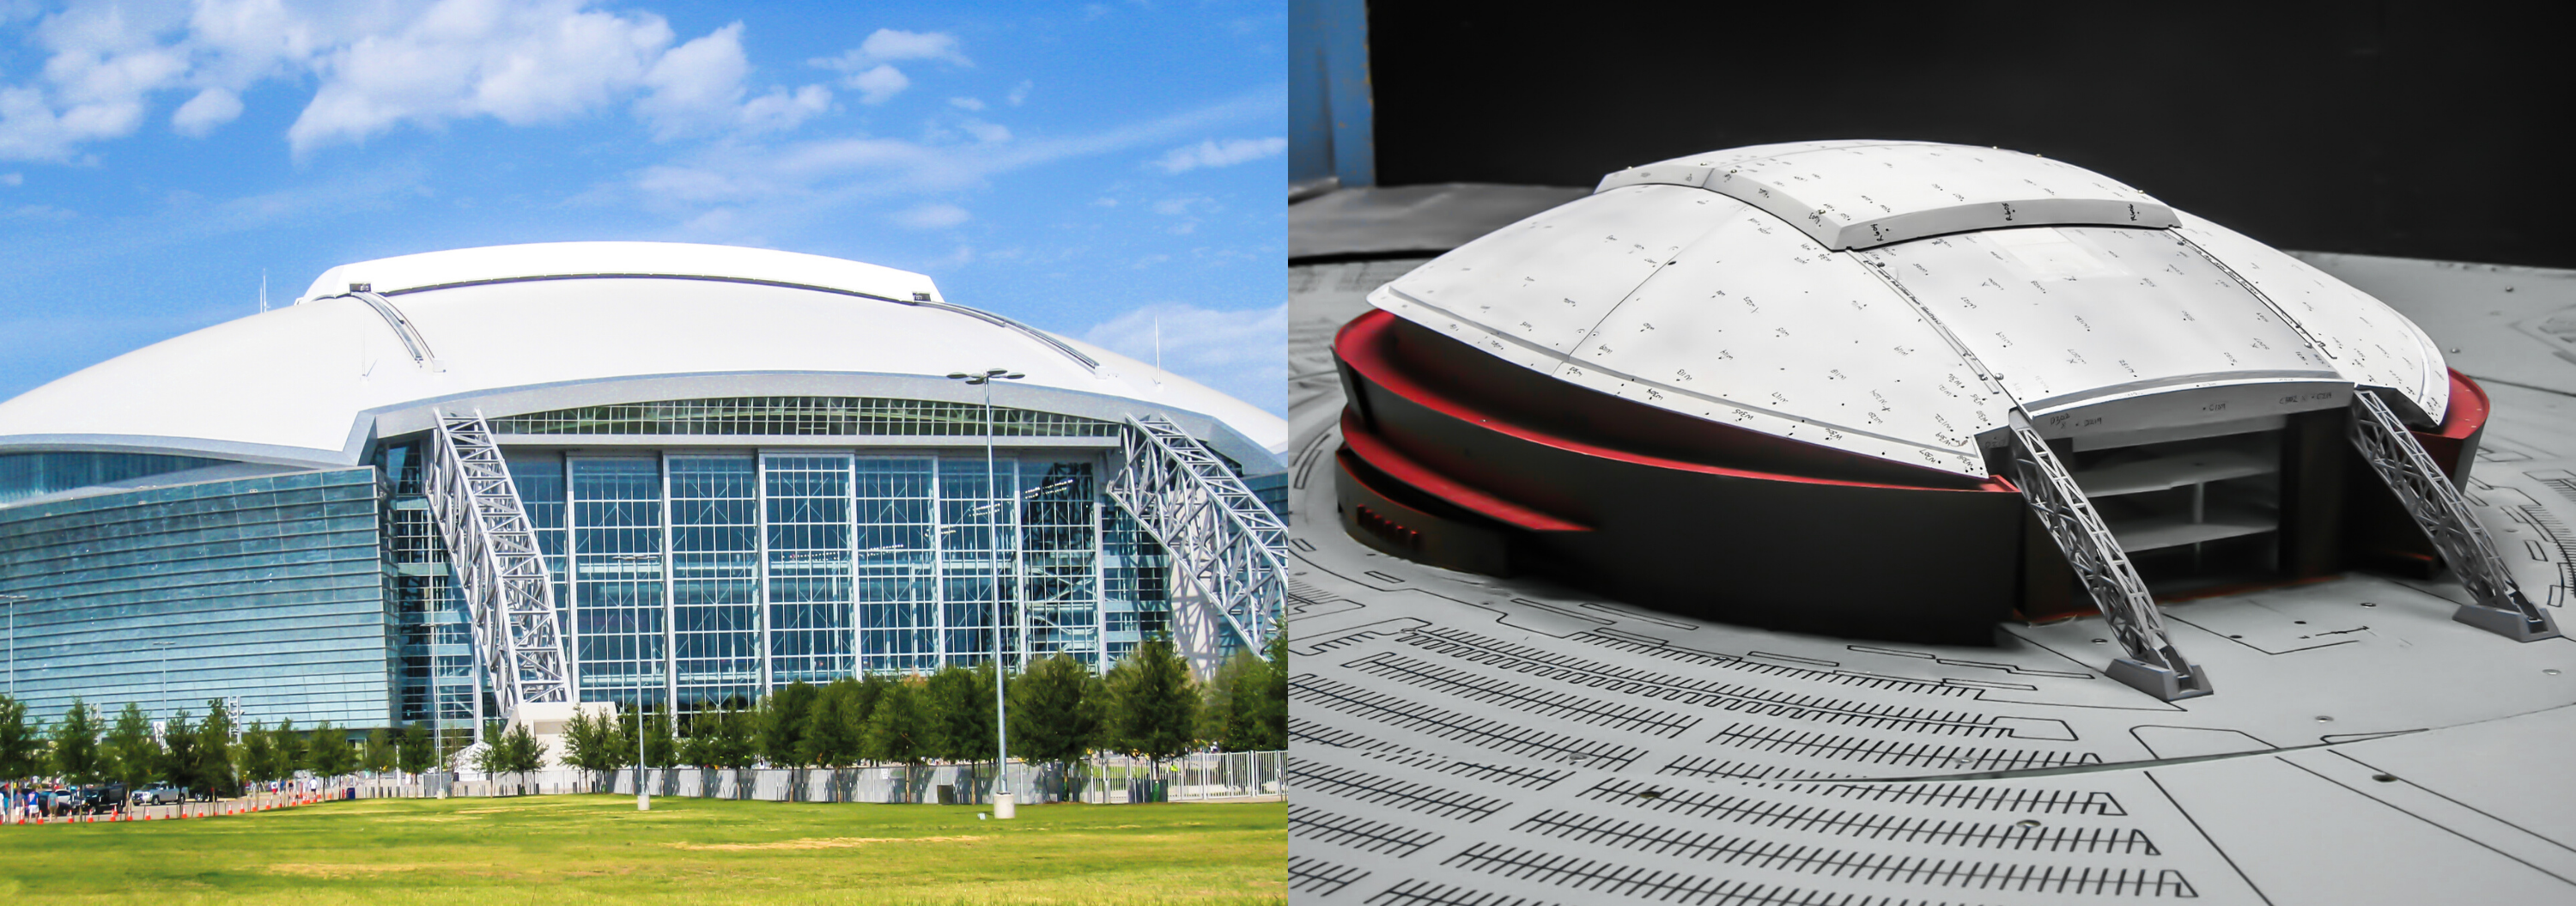 The Dallas Cowboys stadium (left) and a model built by RWDI.